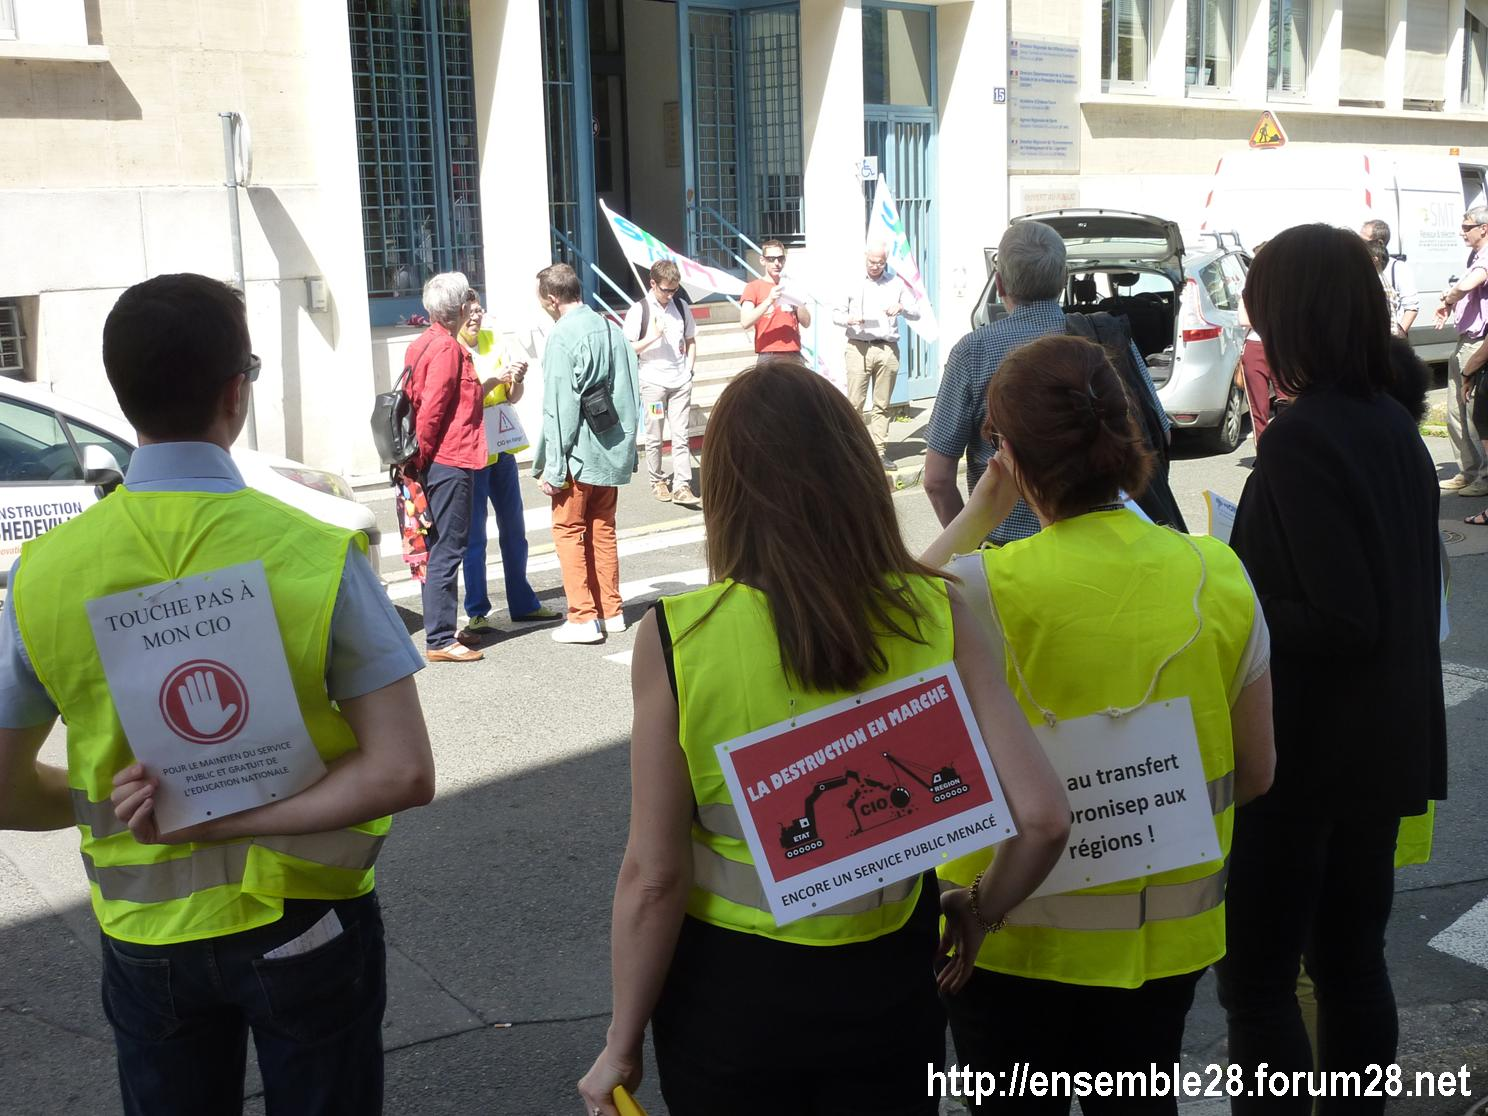 19-04-2018 Chartres Manifestation Interprofessionnelle CGT Solidaires SNES-FSU n°02